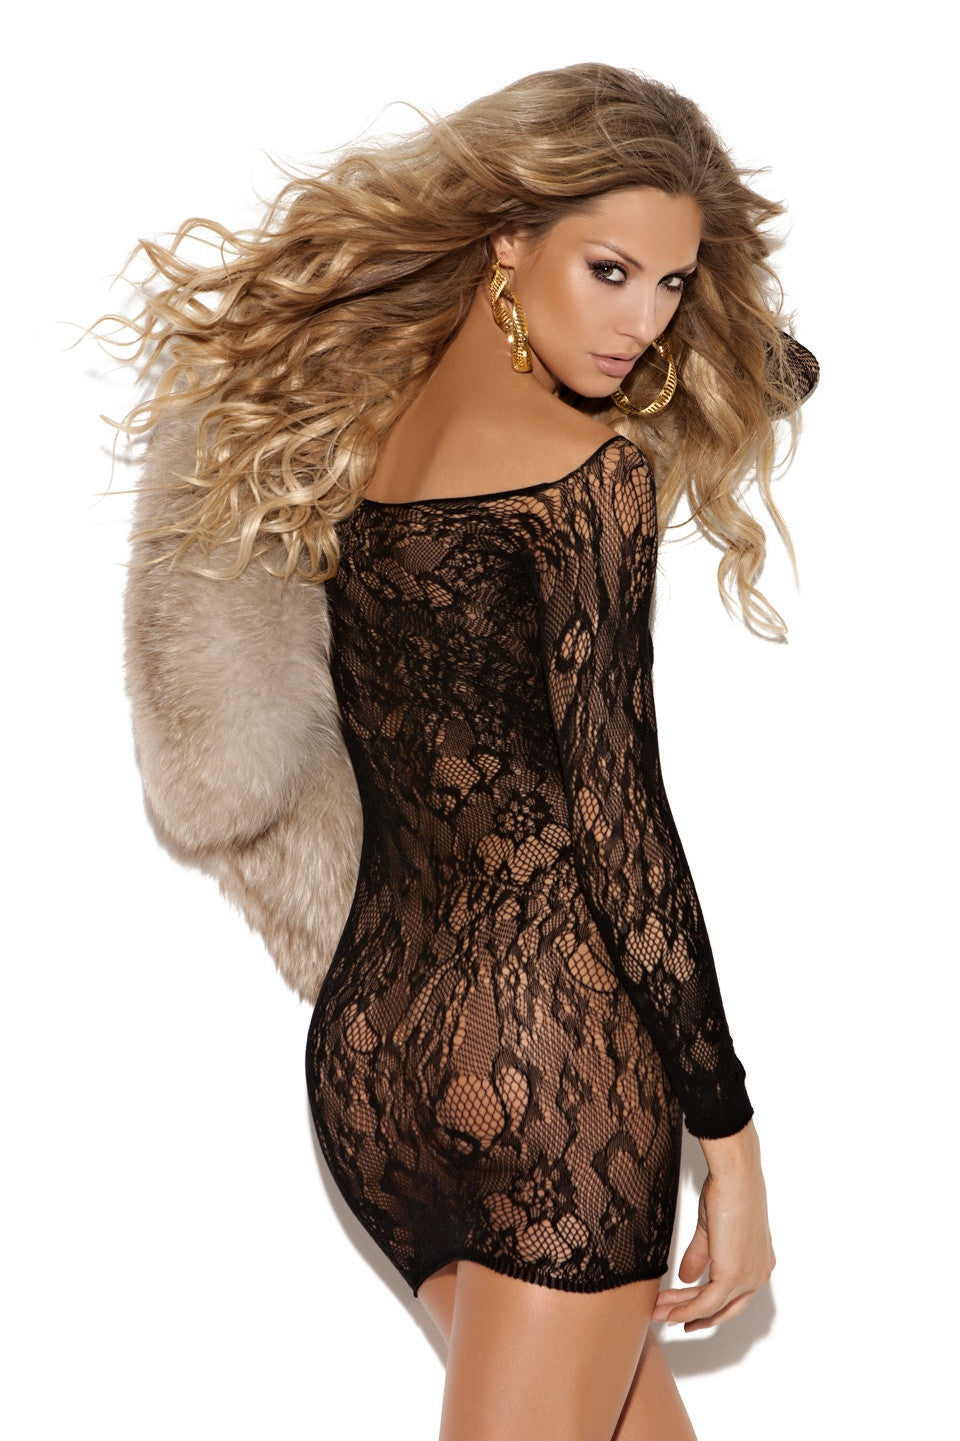 EM-8799 Long sleeve lace mini dress - Sexylingerieland  - 2